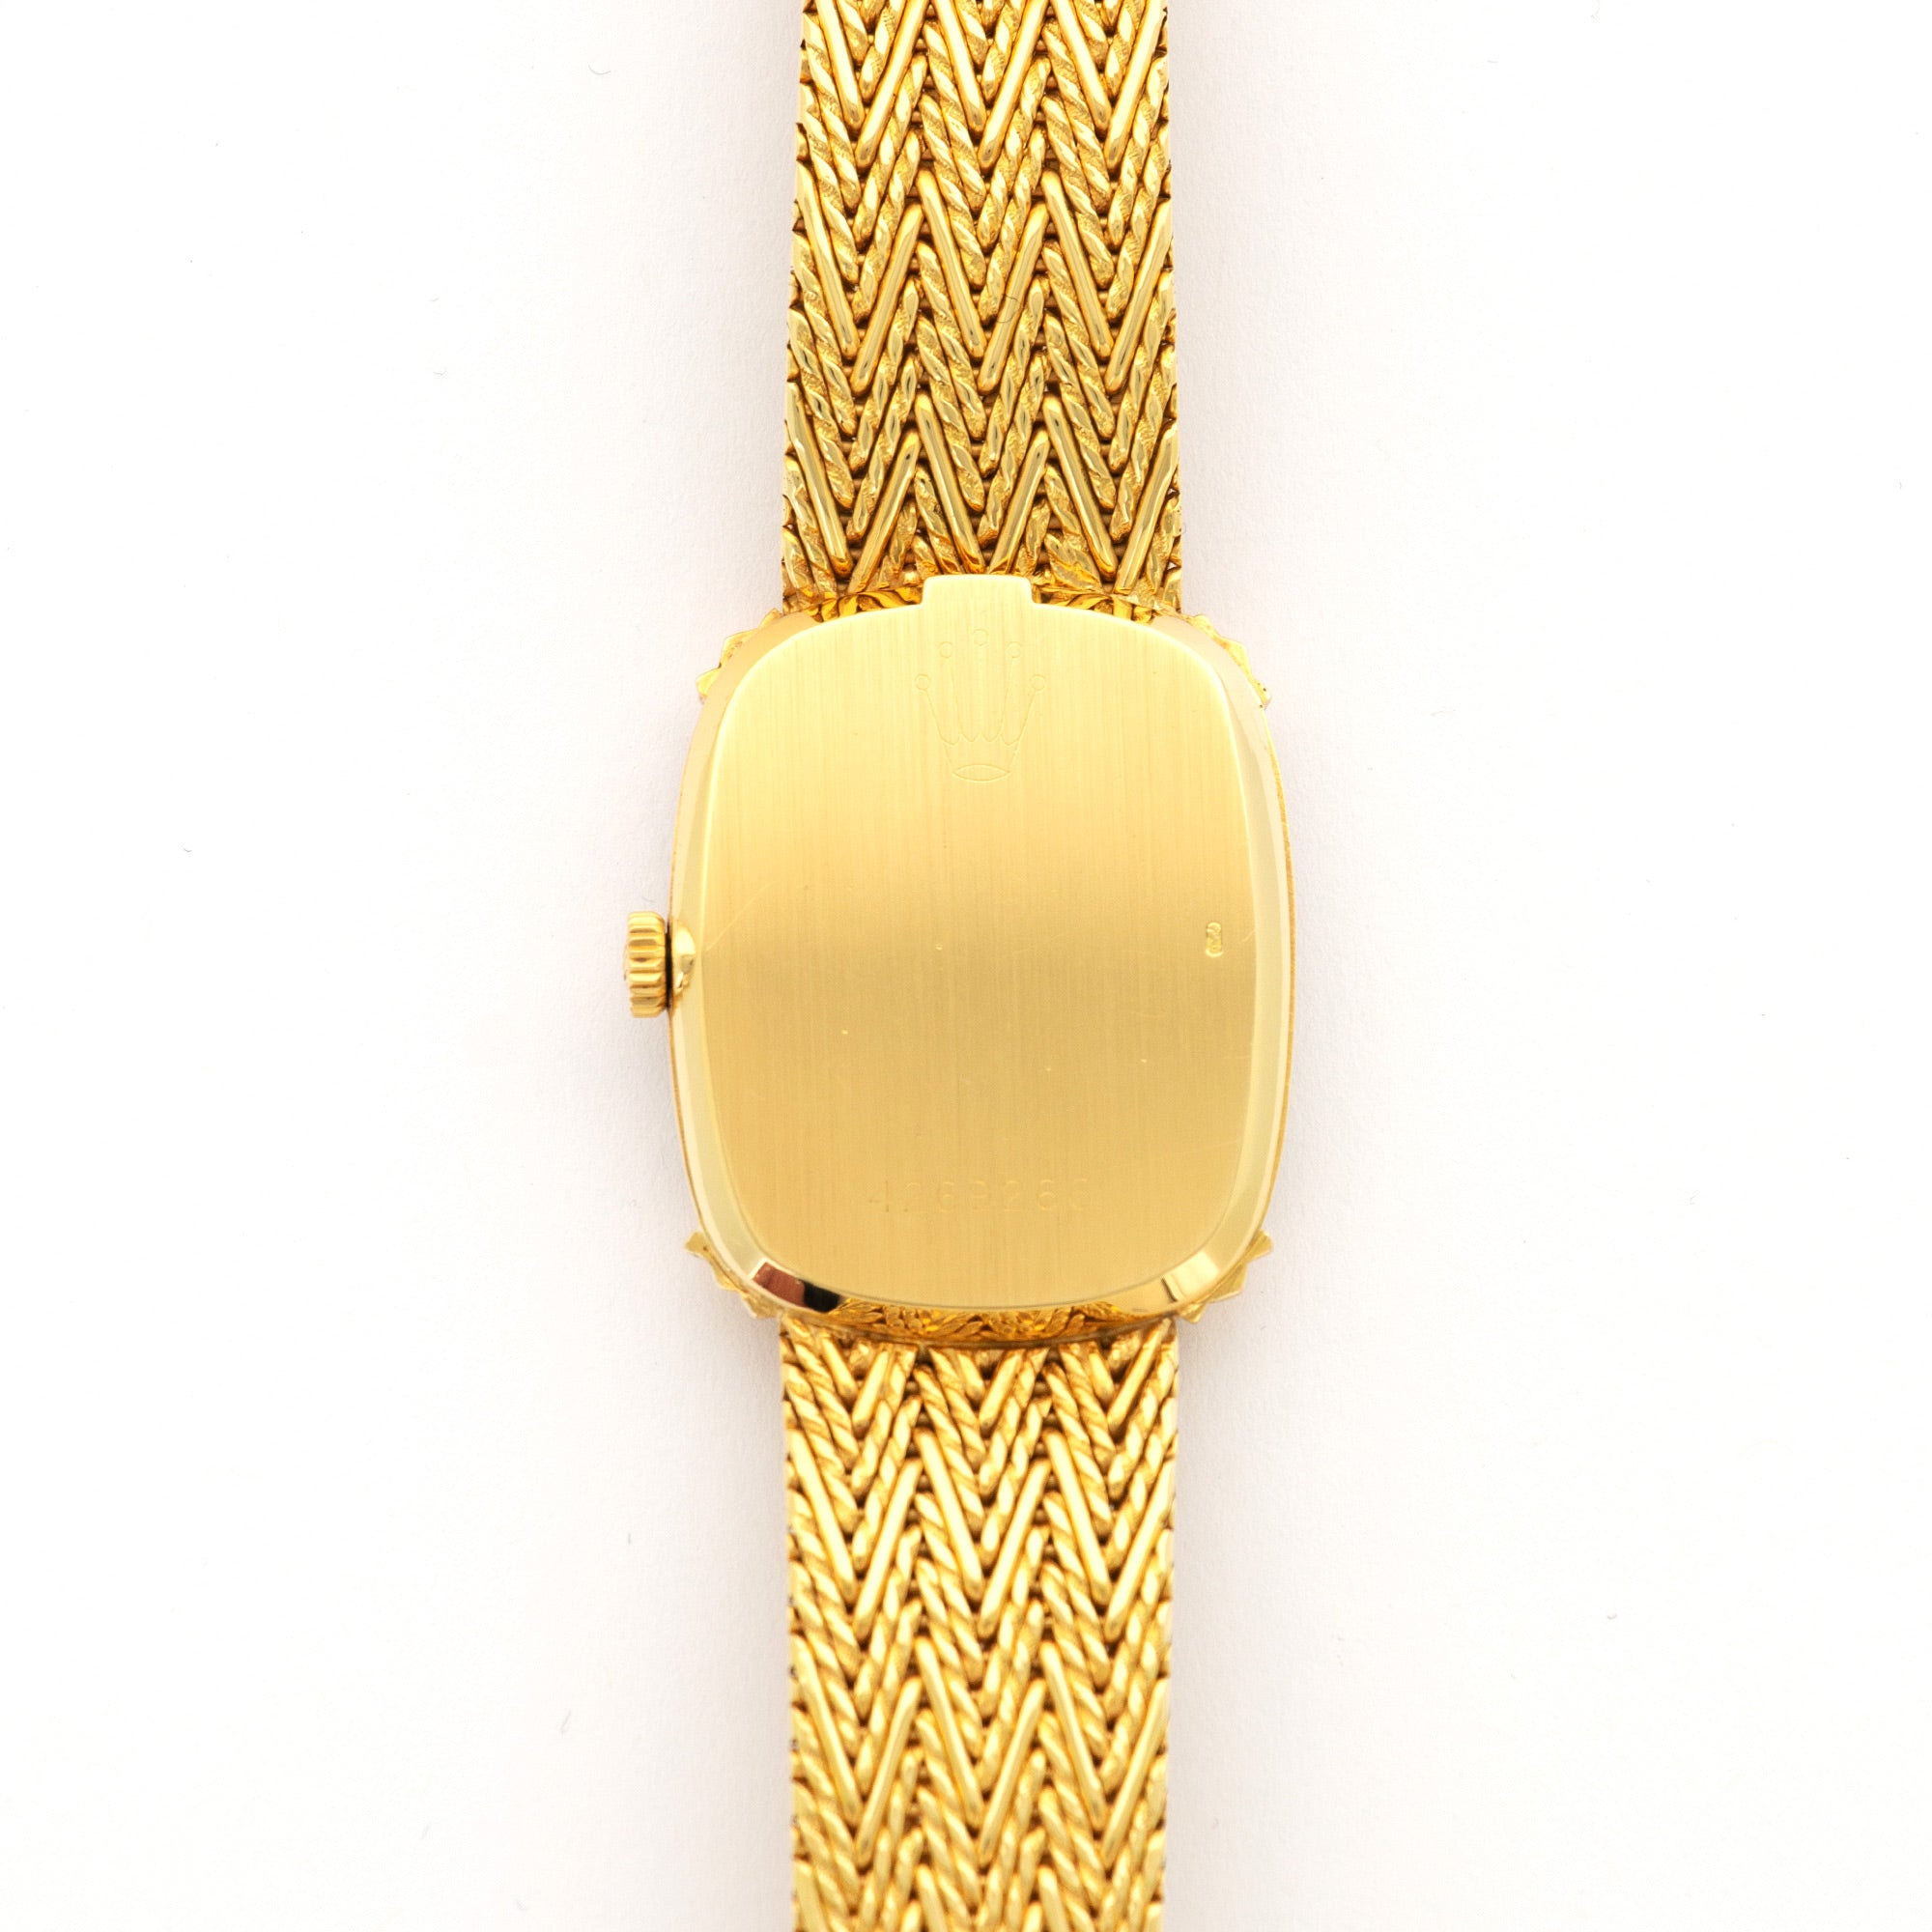 Rolex Cellini N/A 18k YG  Excellent Ladies 18k YG Gold Dial 23 X 28mm Manual 1980s Yellow Gold Bracelet (175mm) Leather Travel Case